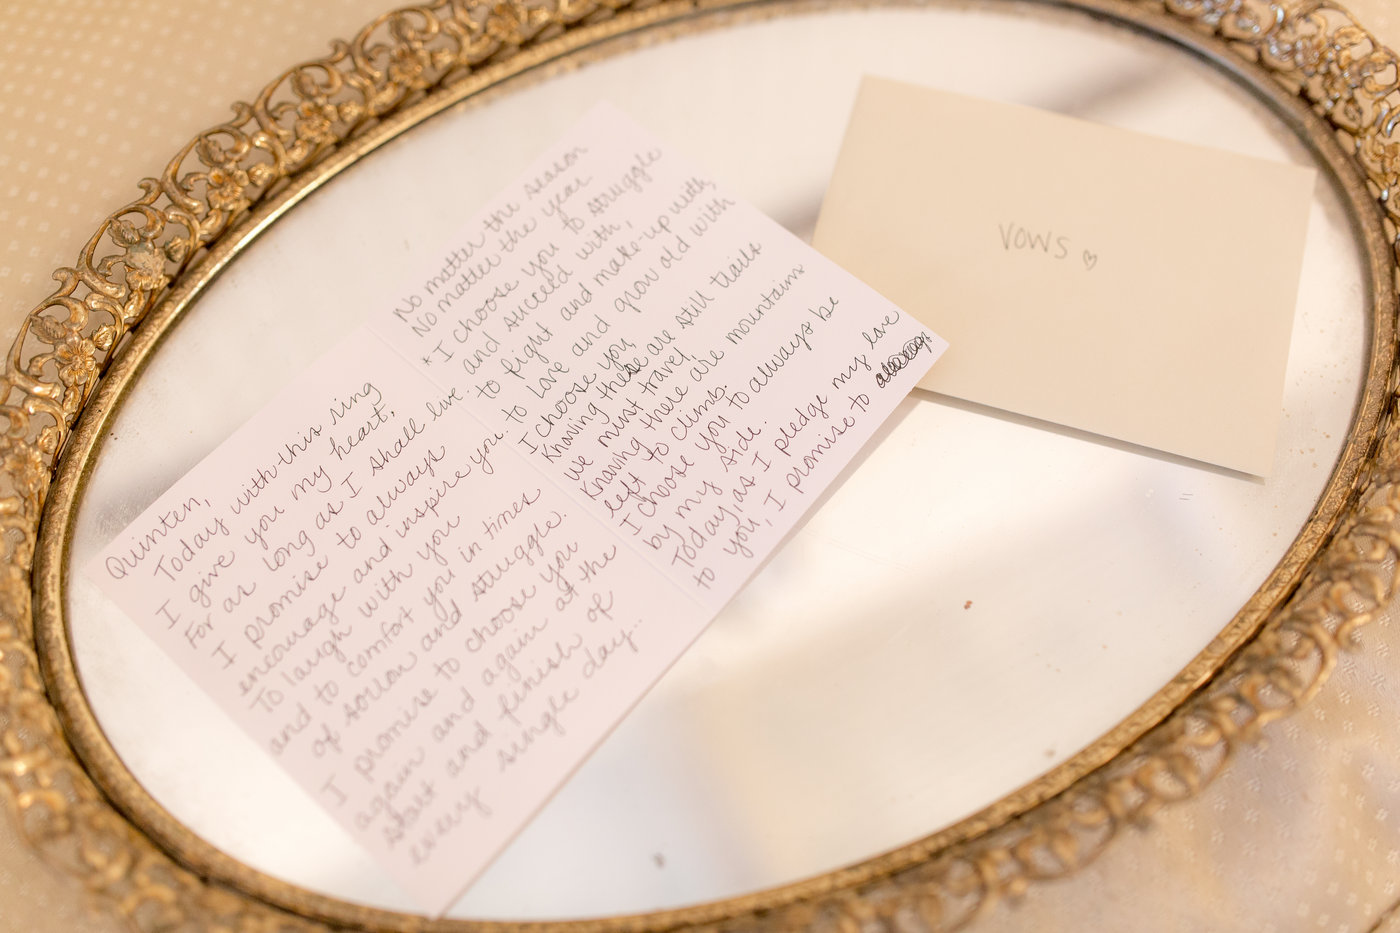 Vows and letters written to groom on gold mirror placed out on wedding day